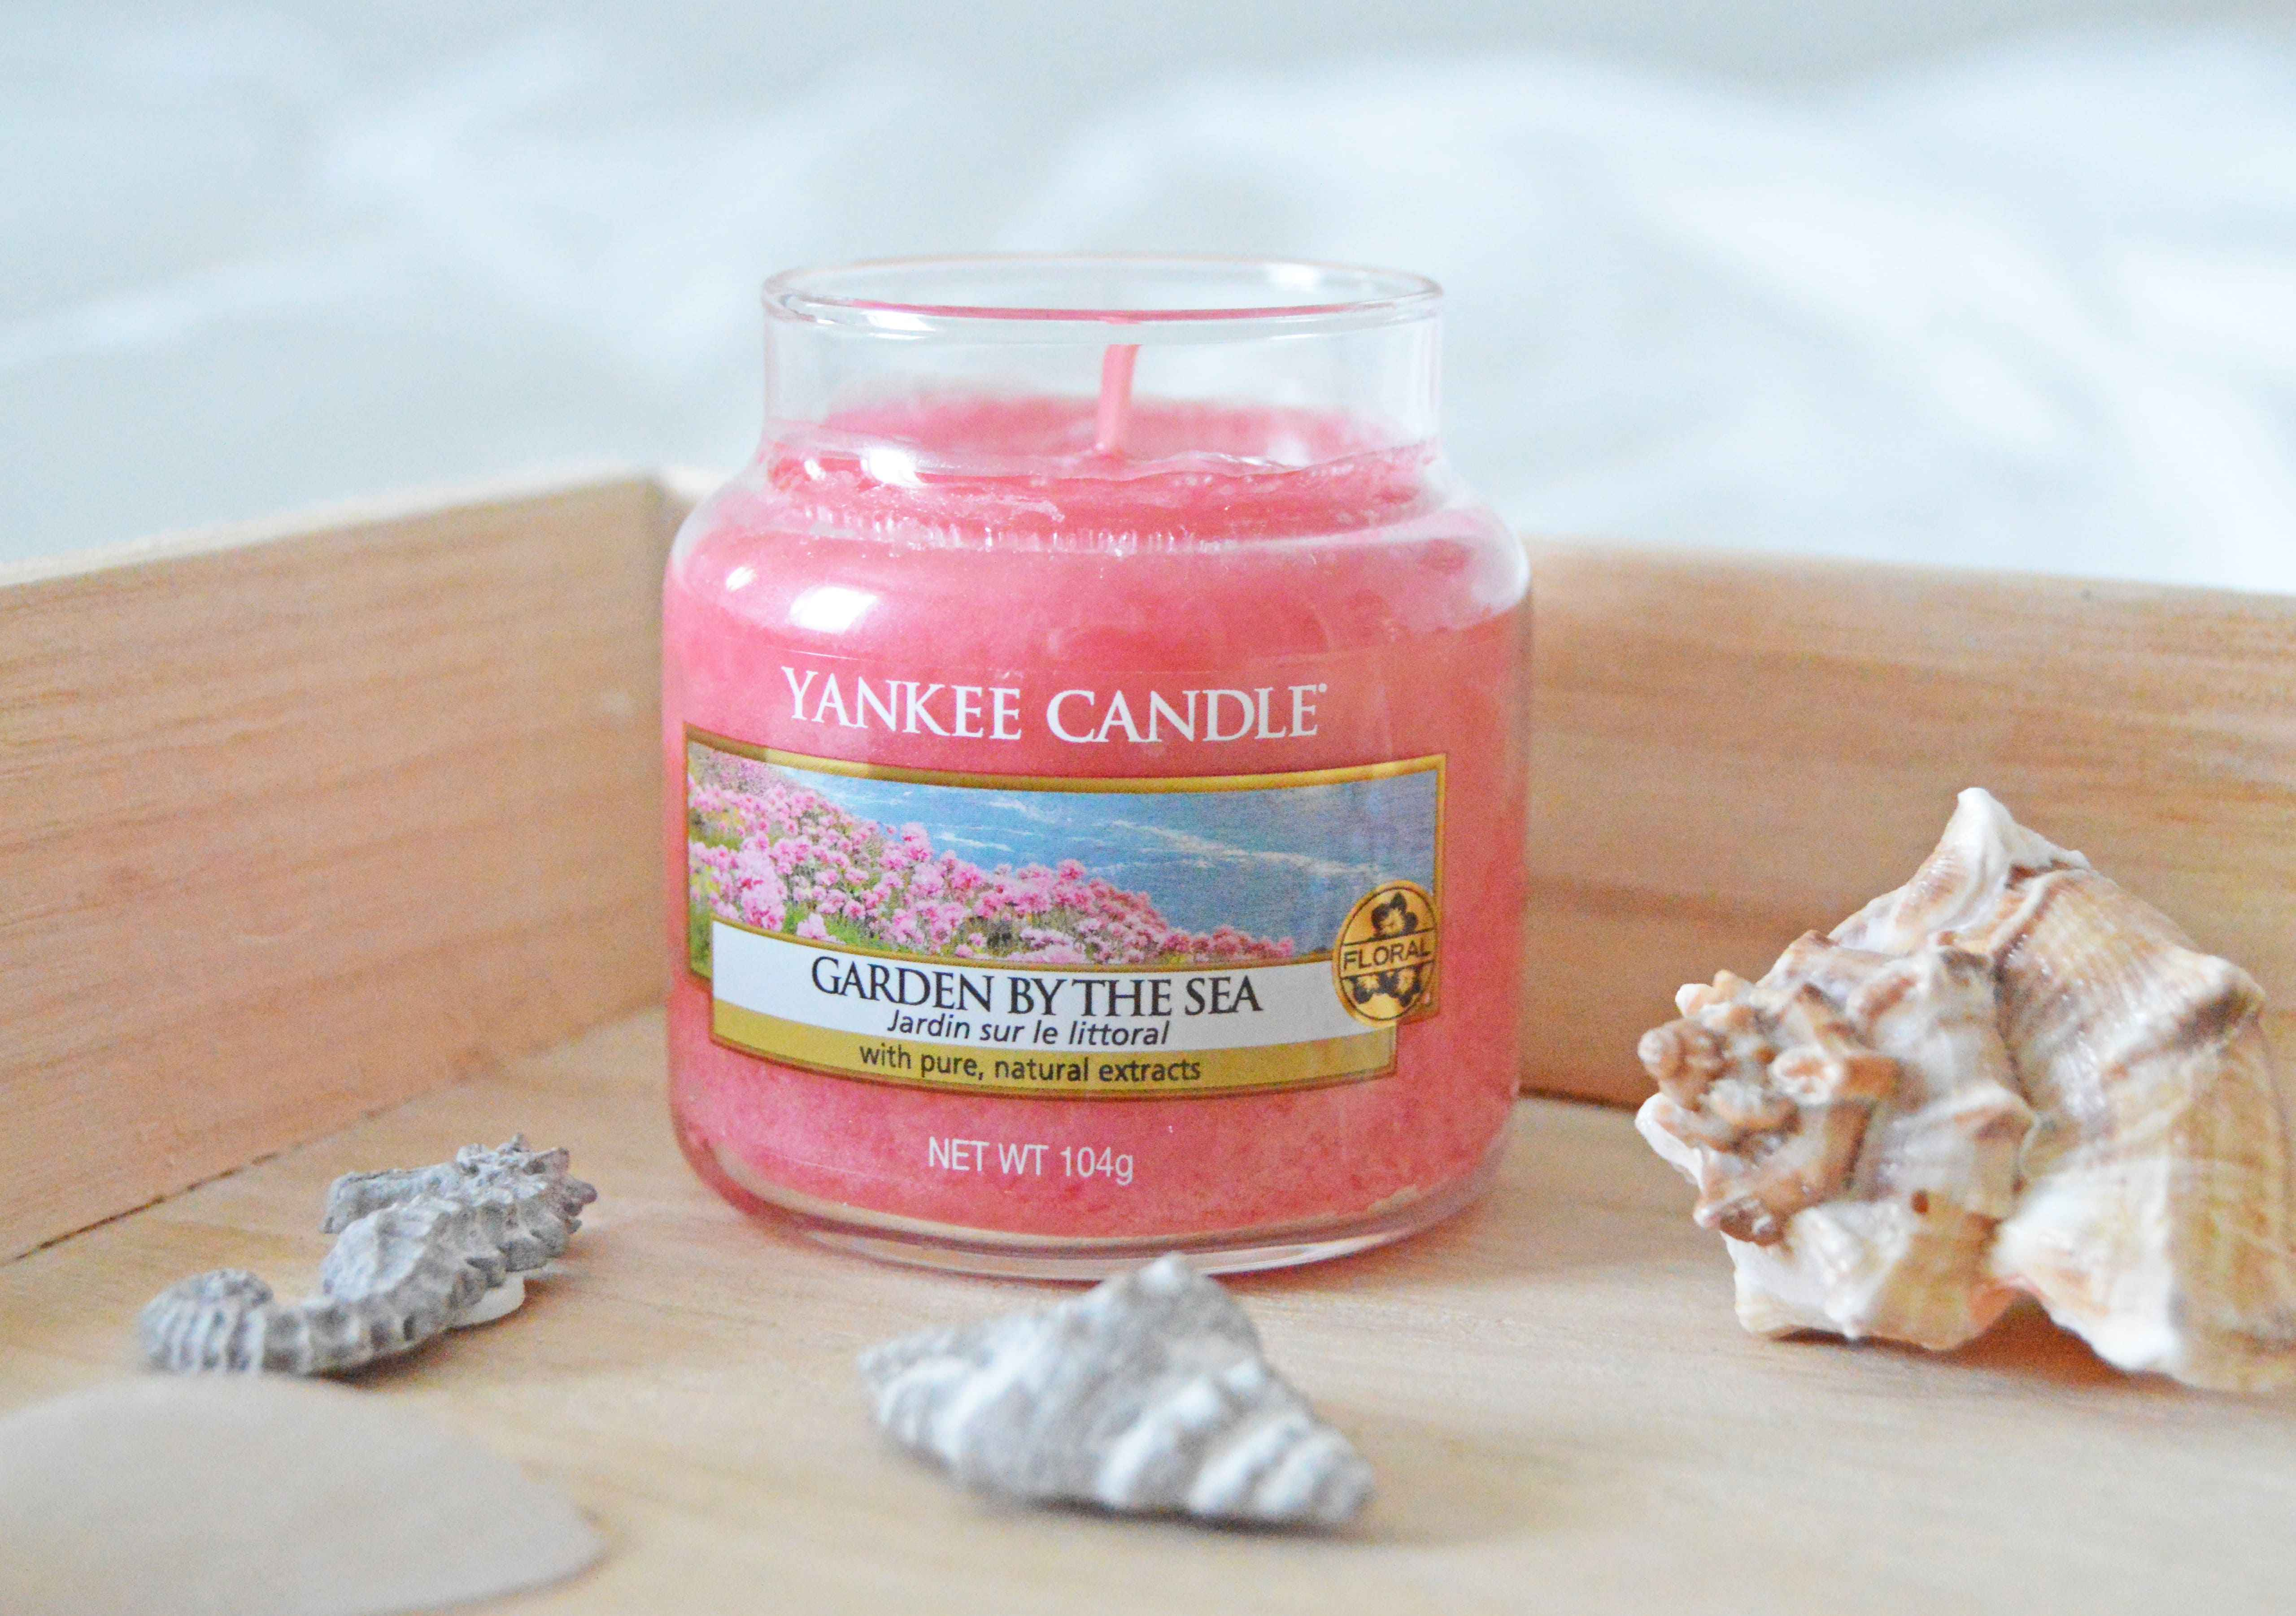 Yankee Candle - Garden by the Sea